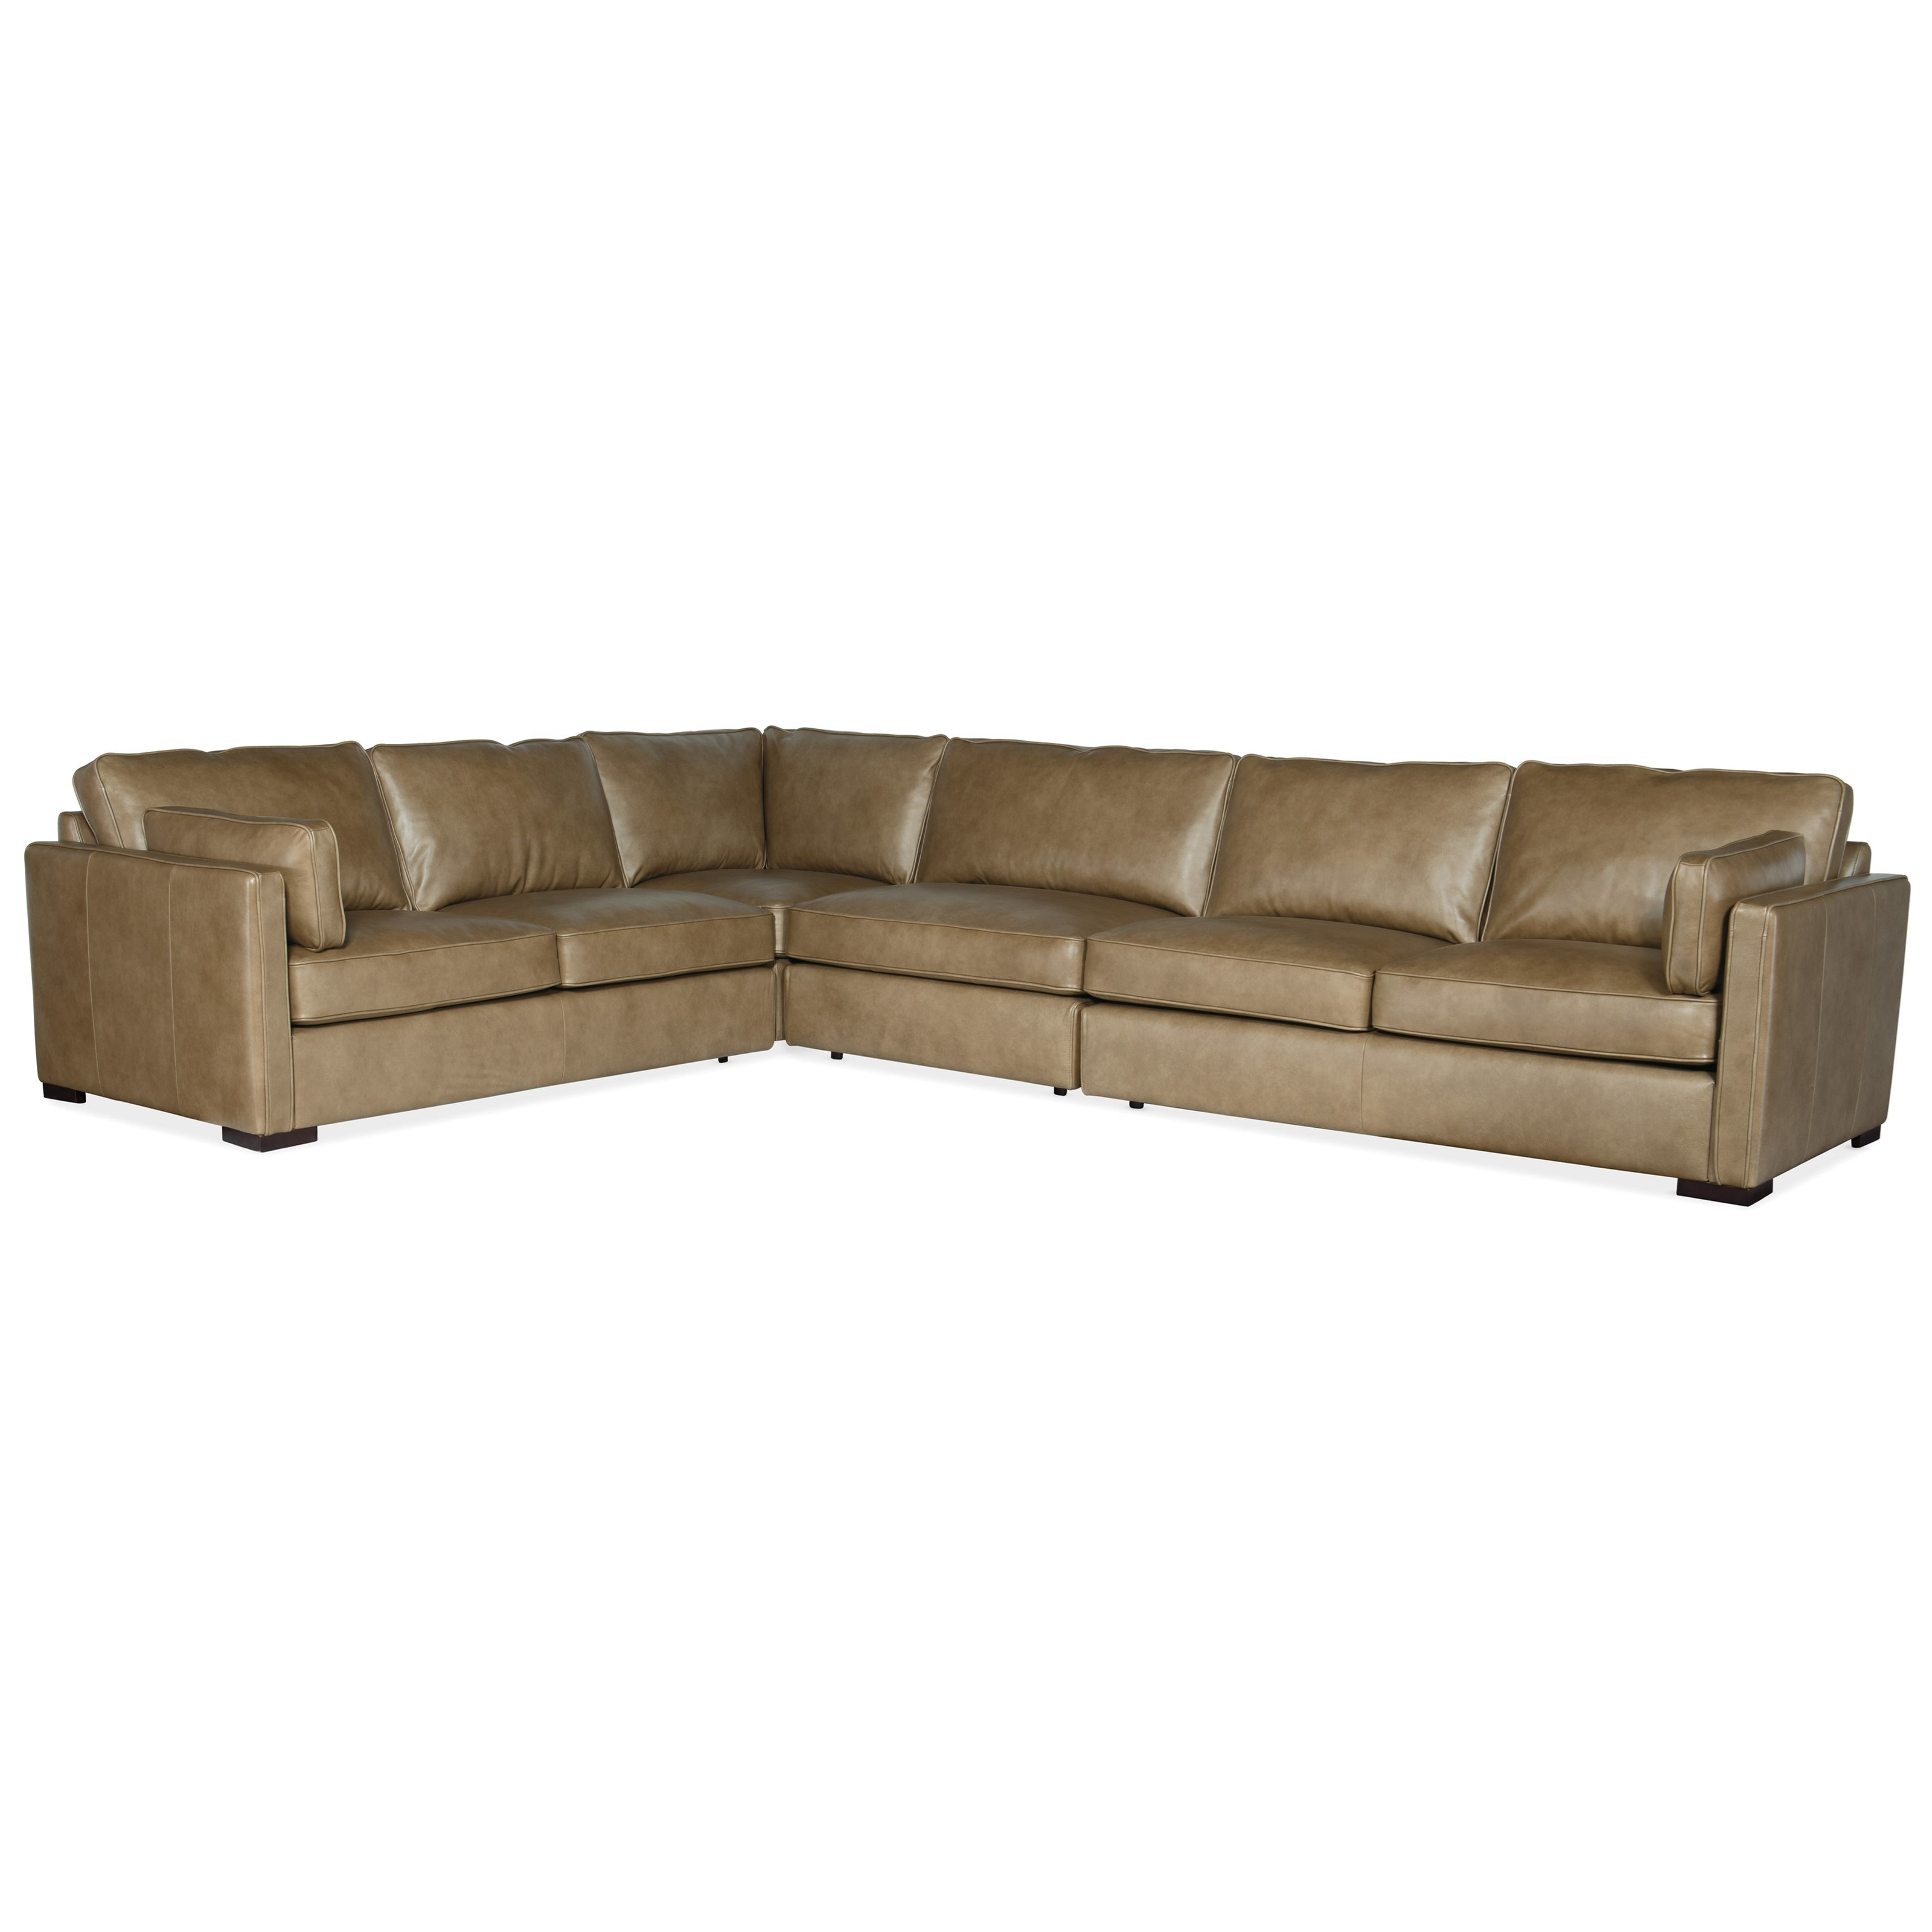 Romiah 4-Piece Stationary Sectional by Hooker Furniture at Miller Waldrop Furniture and Decor